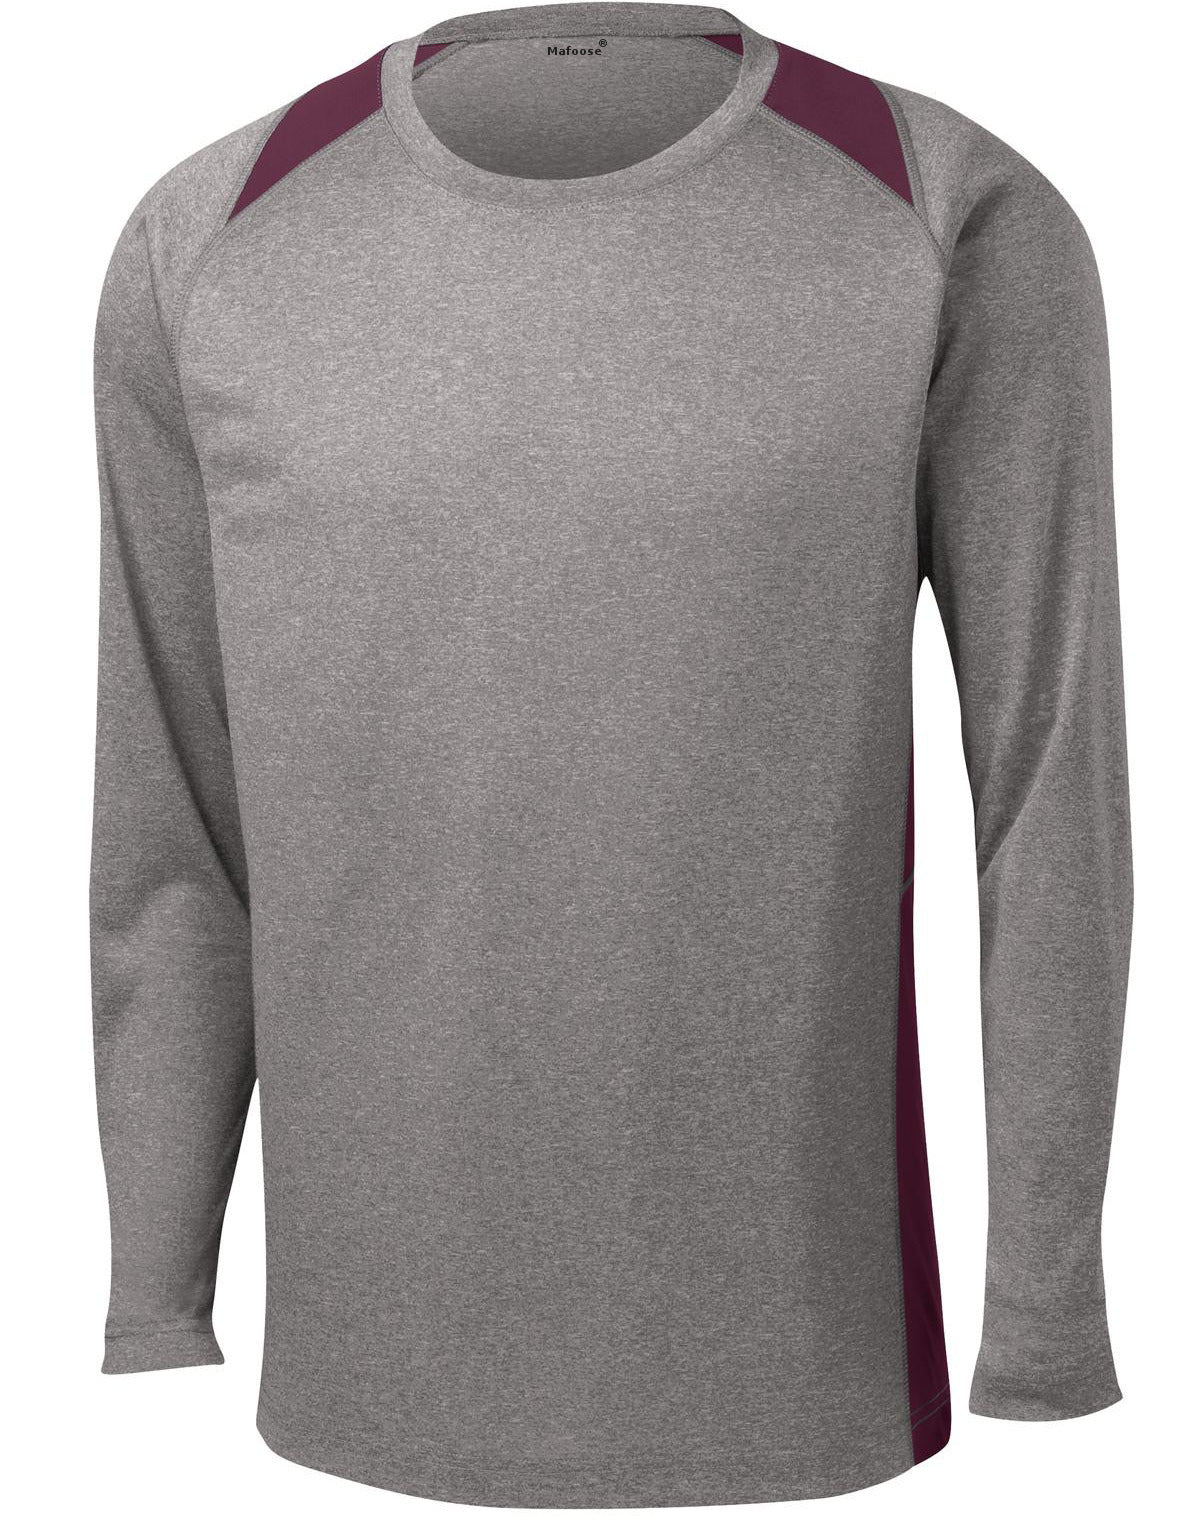 Mafoose Men's Long Sleeve Heather Colorblock Contender Tee Shirt Vintage Heather/ Maroon-Front